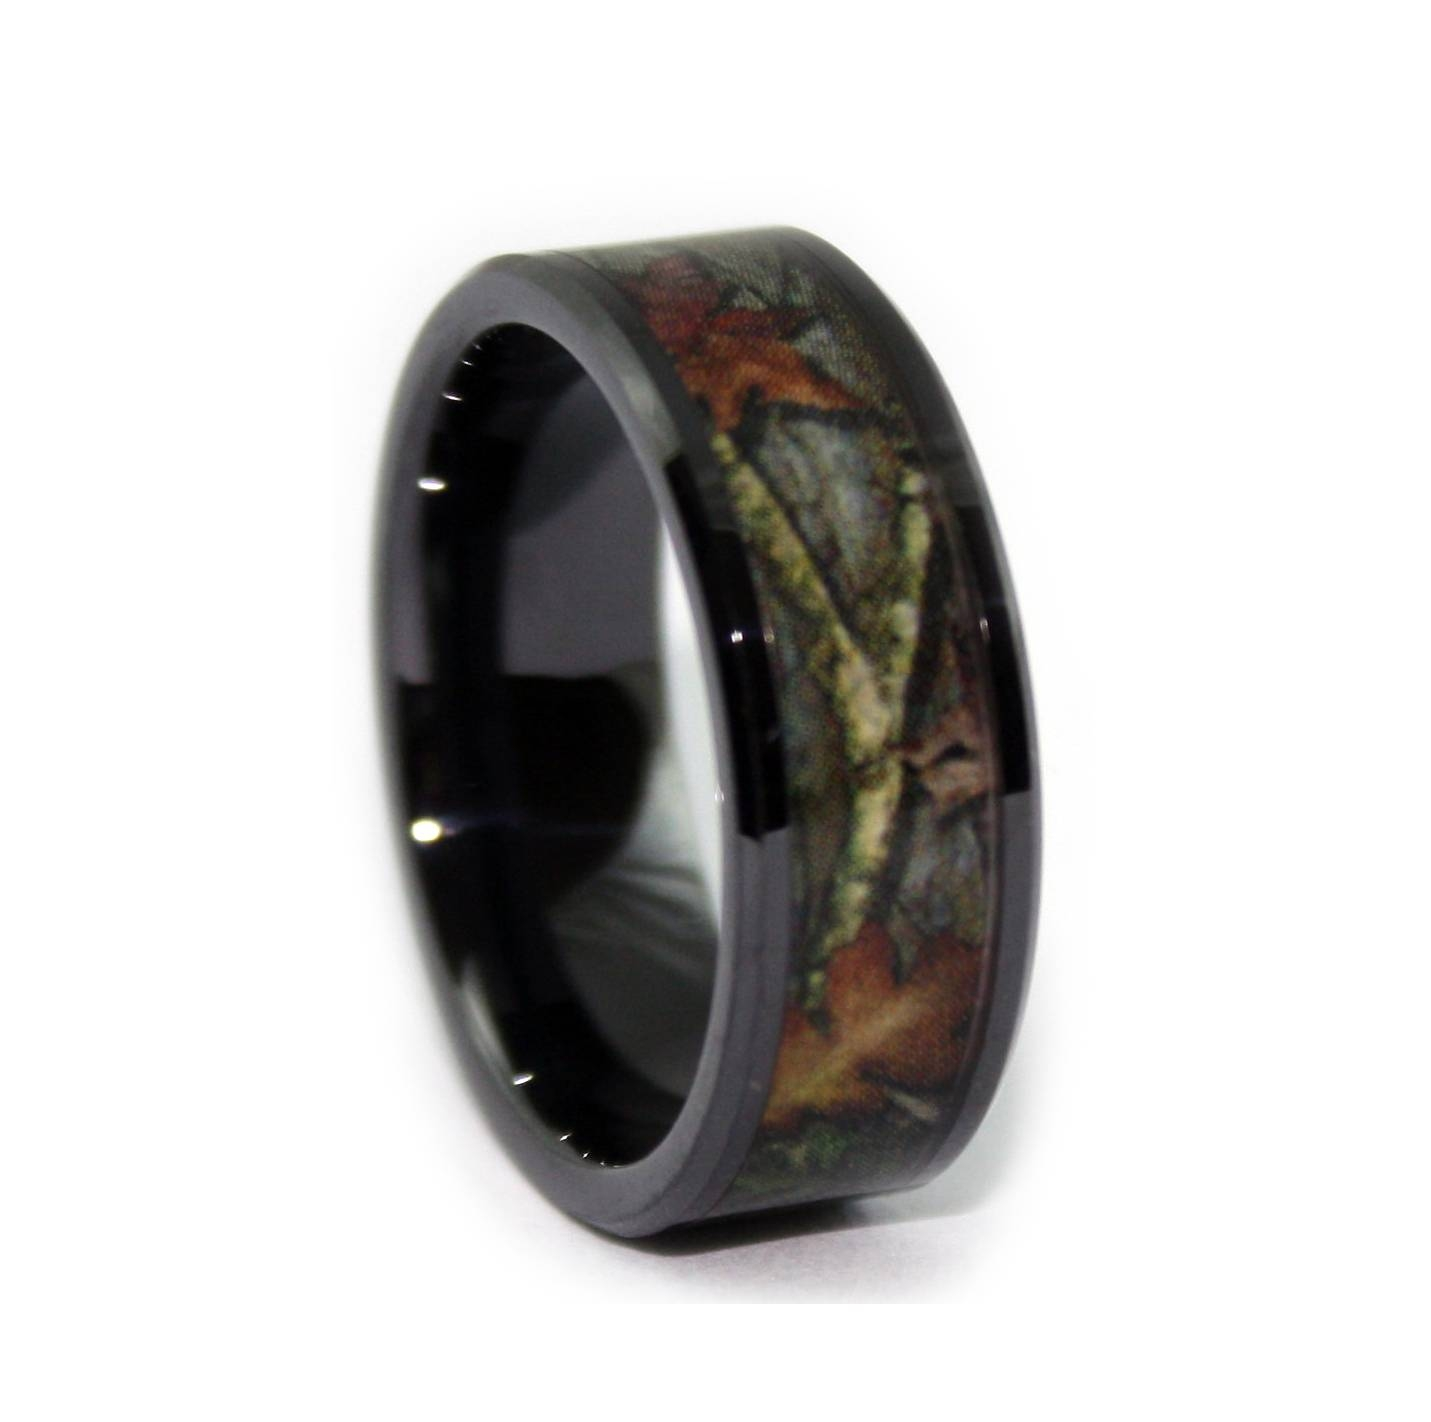 Camo Wedding Rings – Black Ceramic Ring – Camouflage Band Regarding Camo Wedding Bands (View 4 of 15)